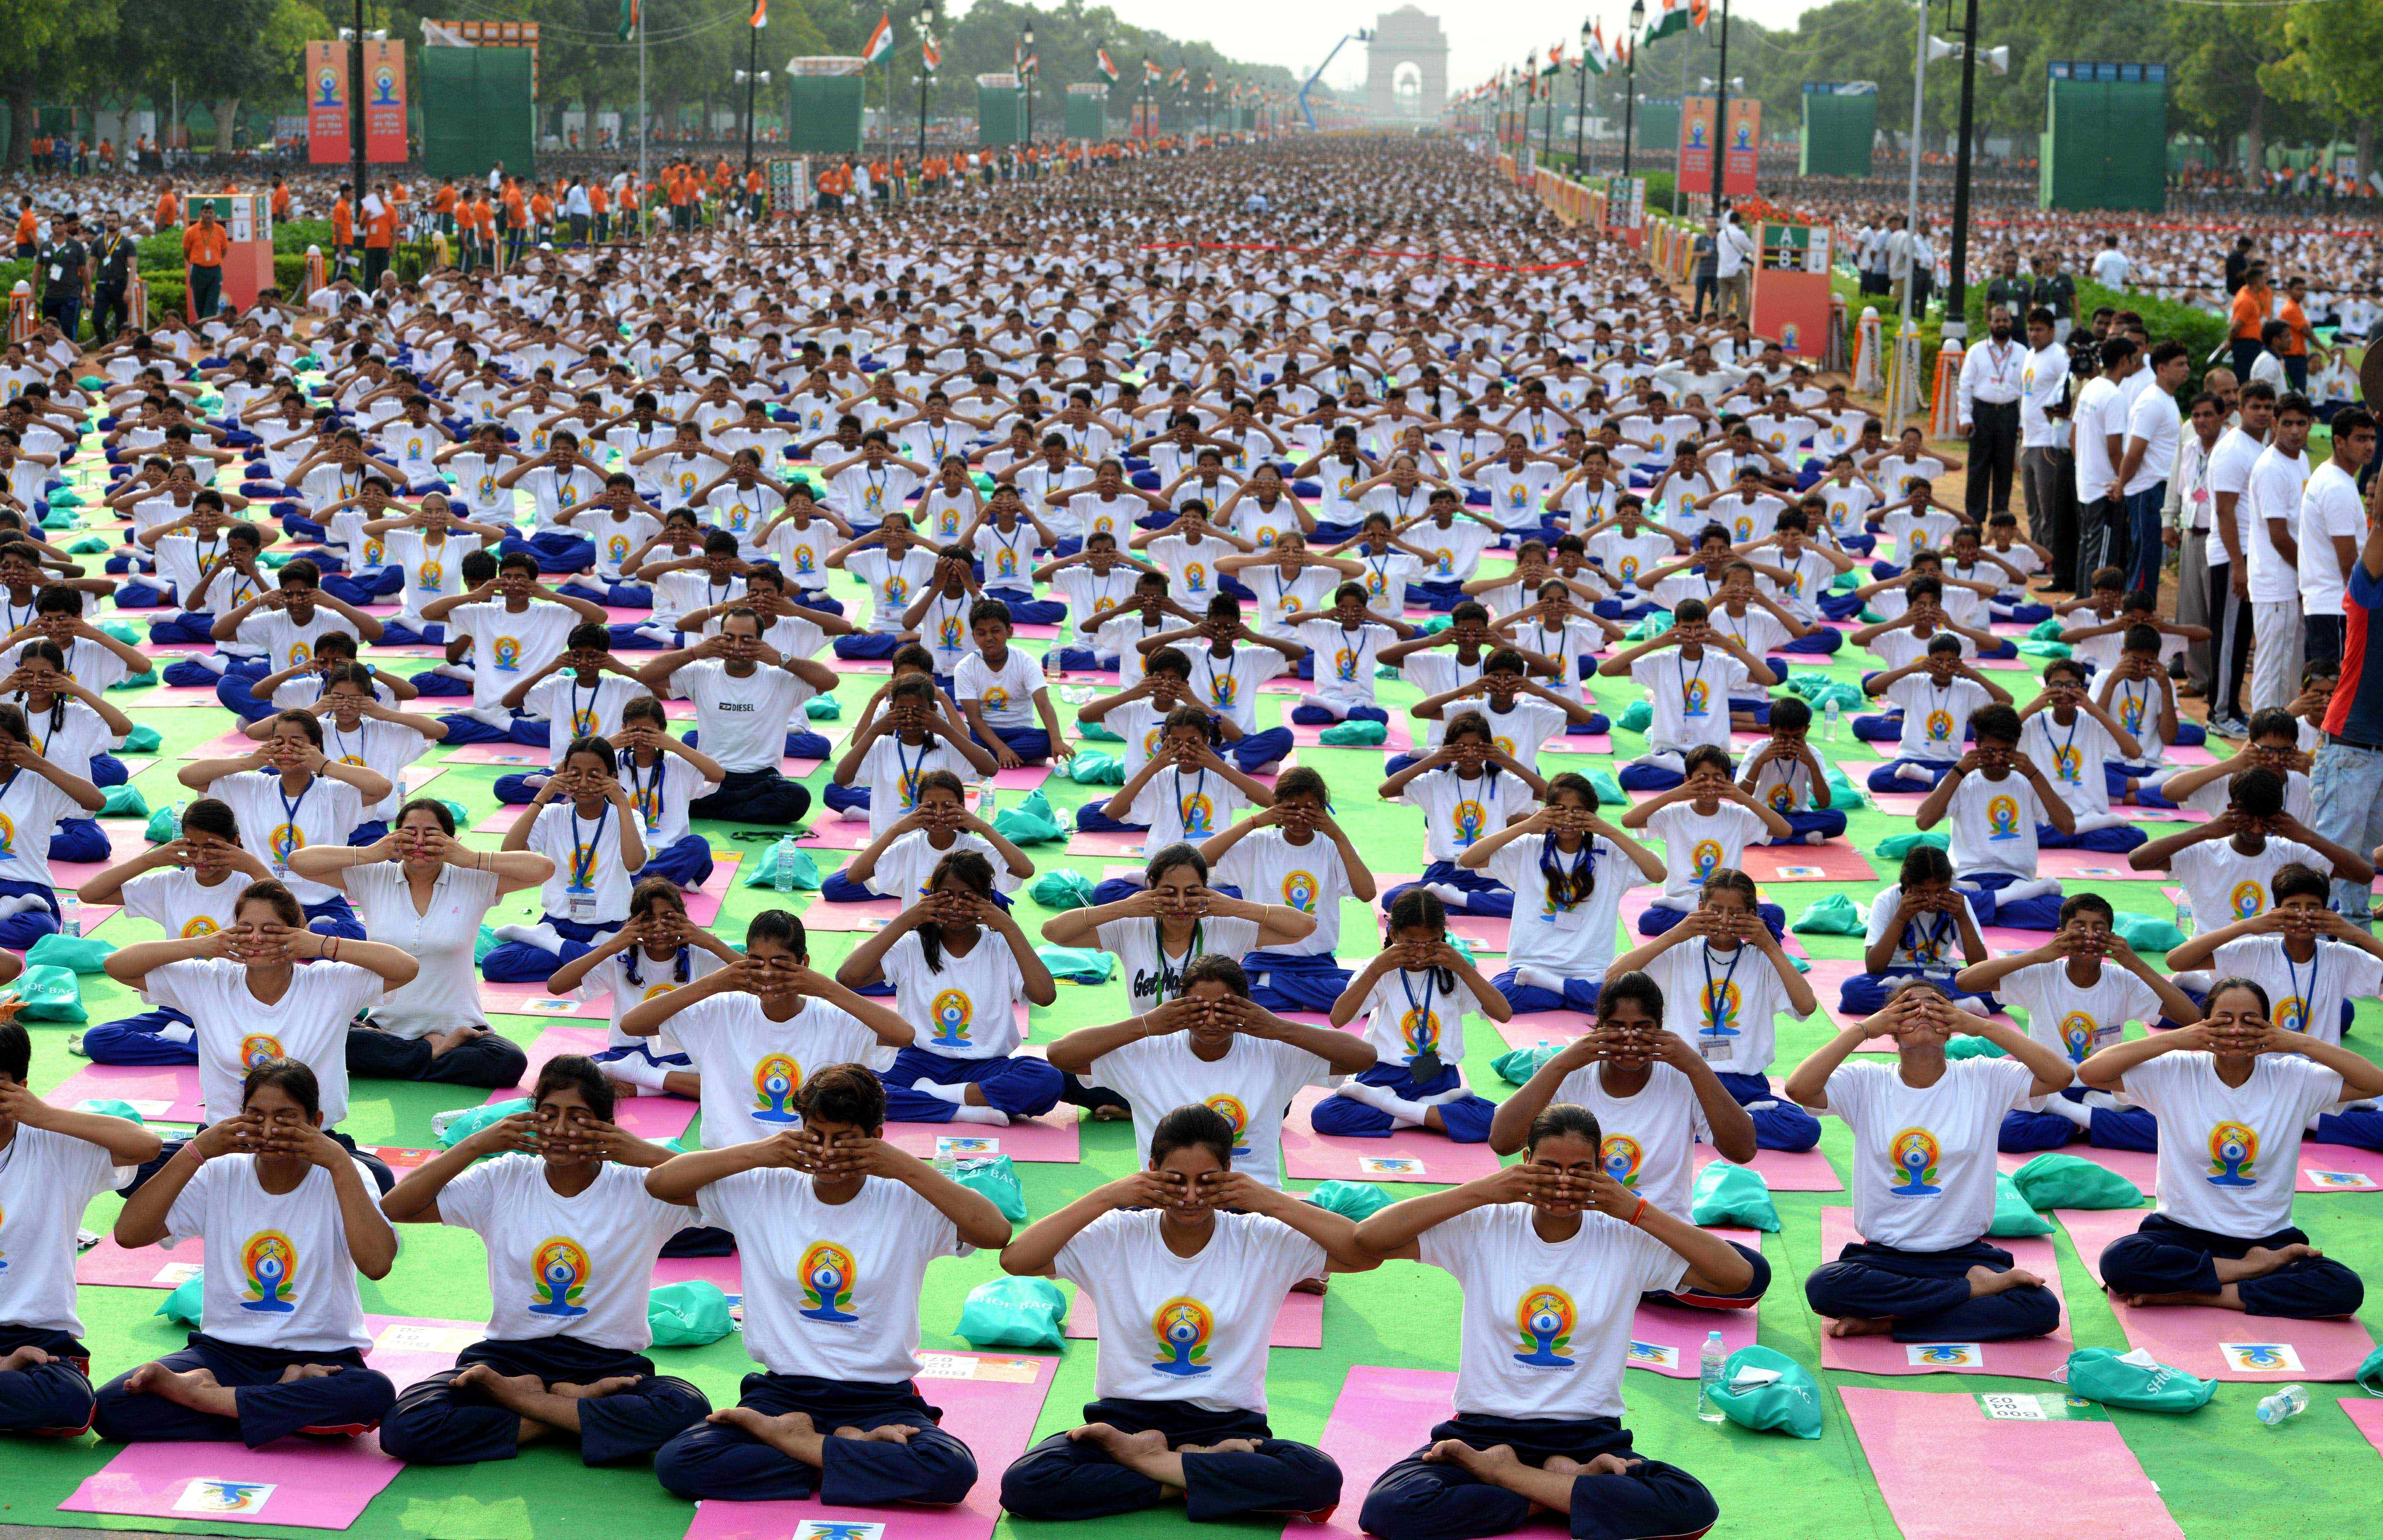 Thousands gather for a mass yoga session to mark International Yoga Day on June 21, 2015, at Rajpath in New Delhi